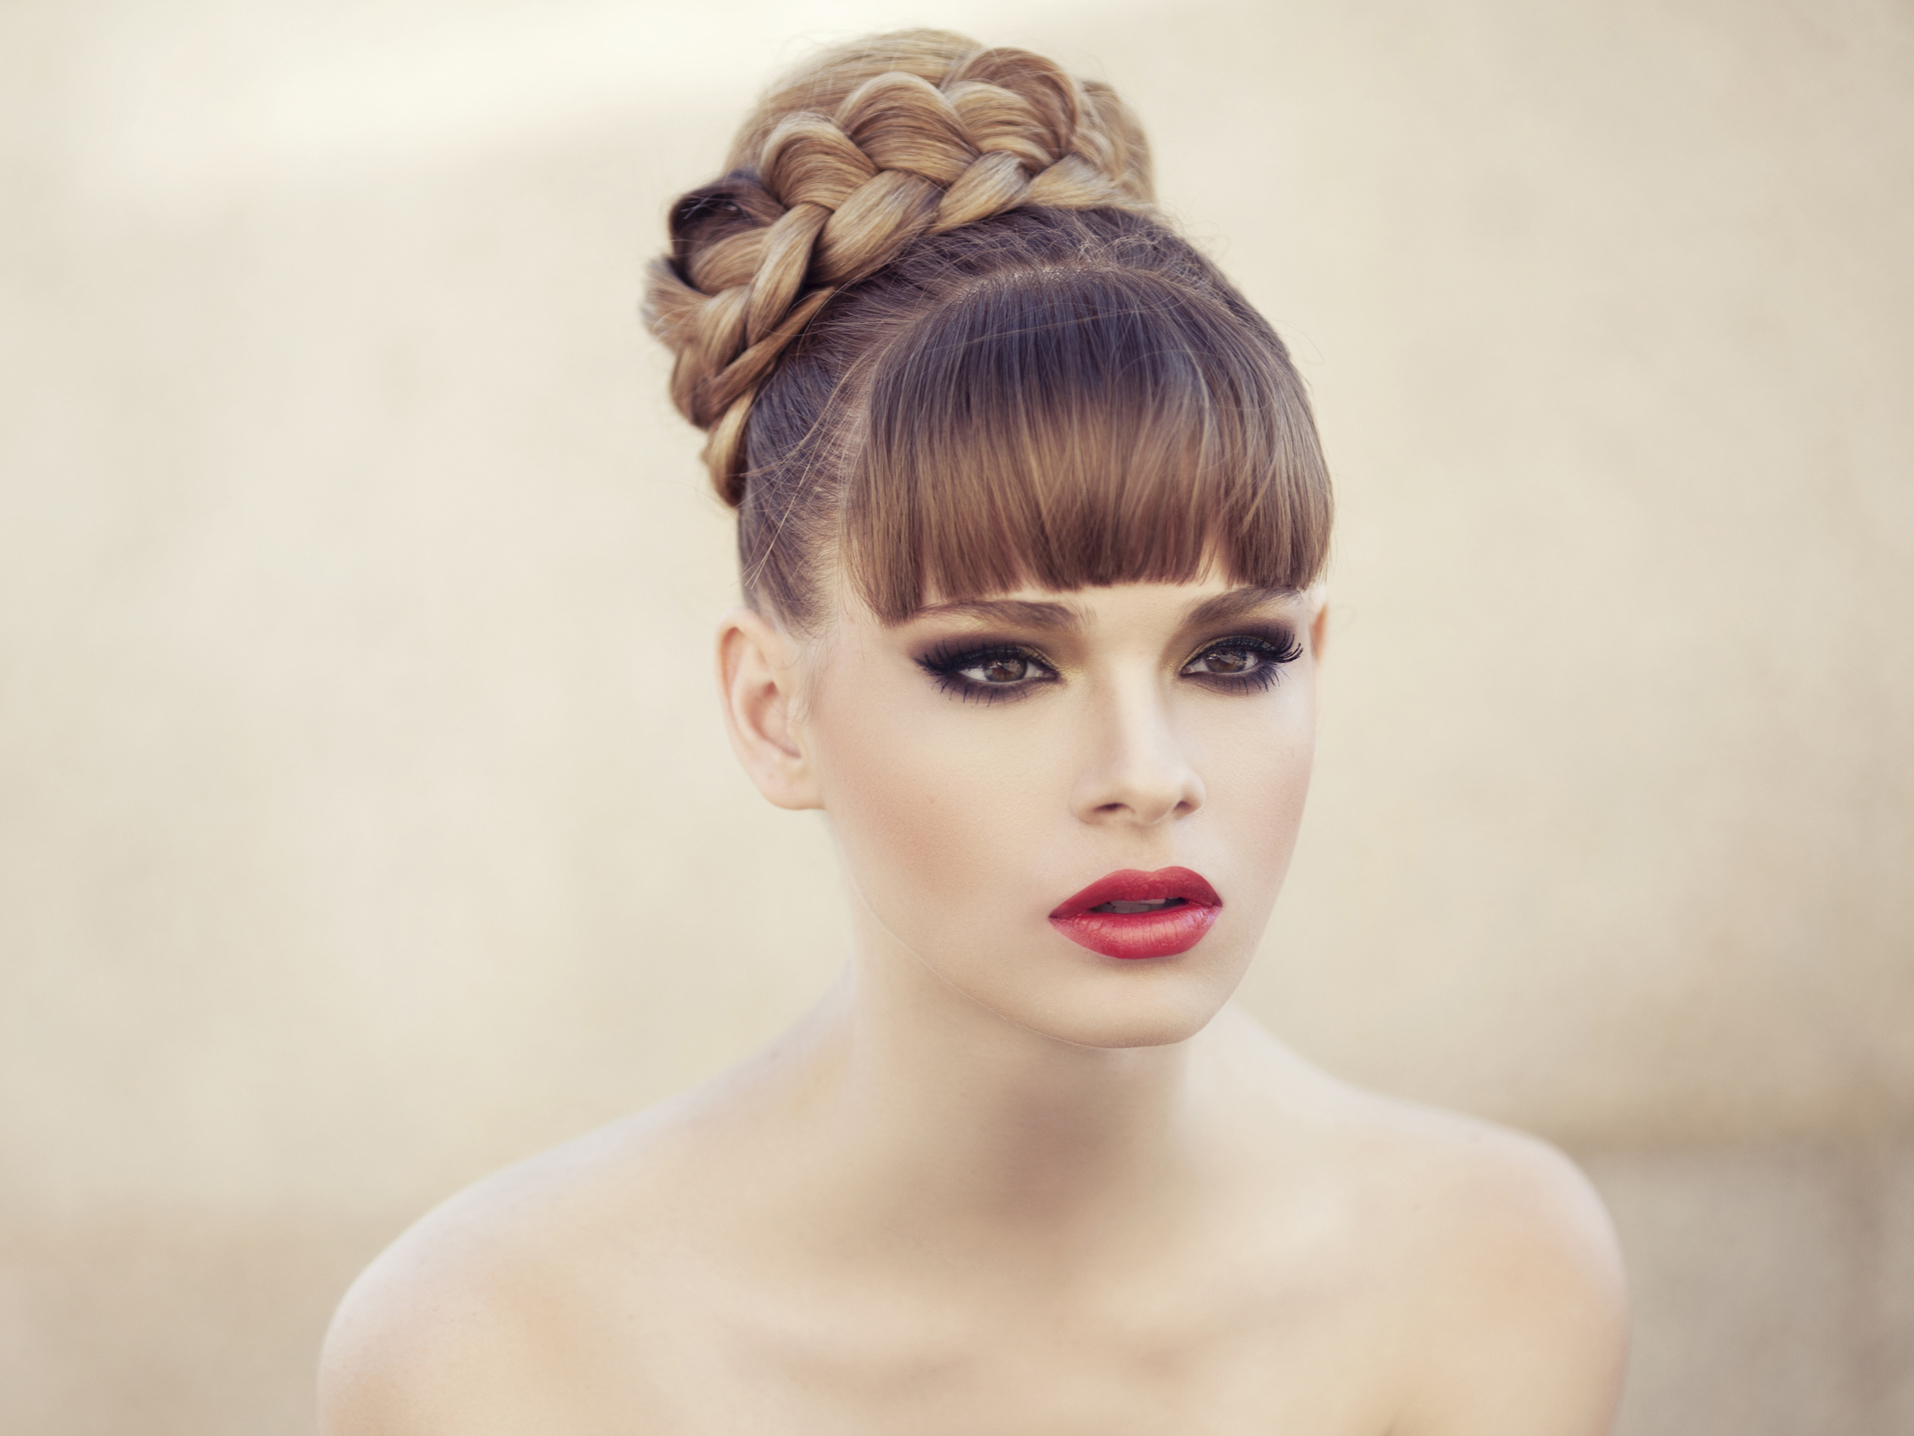 Top 10 holiday hairstyles to try now - AOL Lifestyle